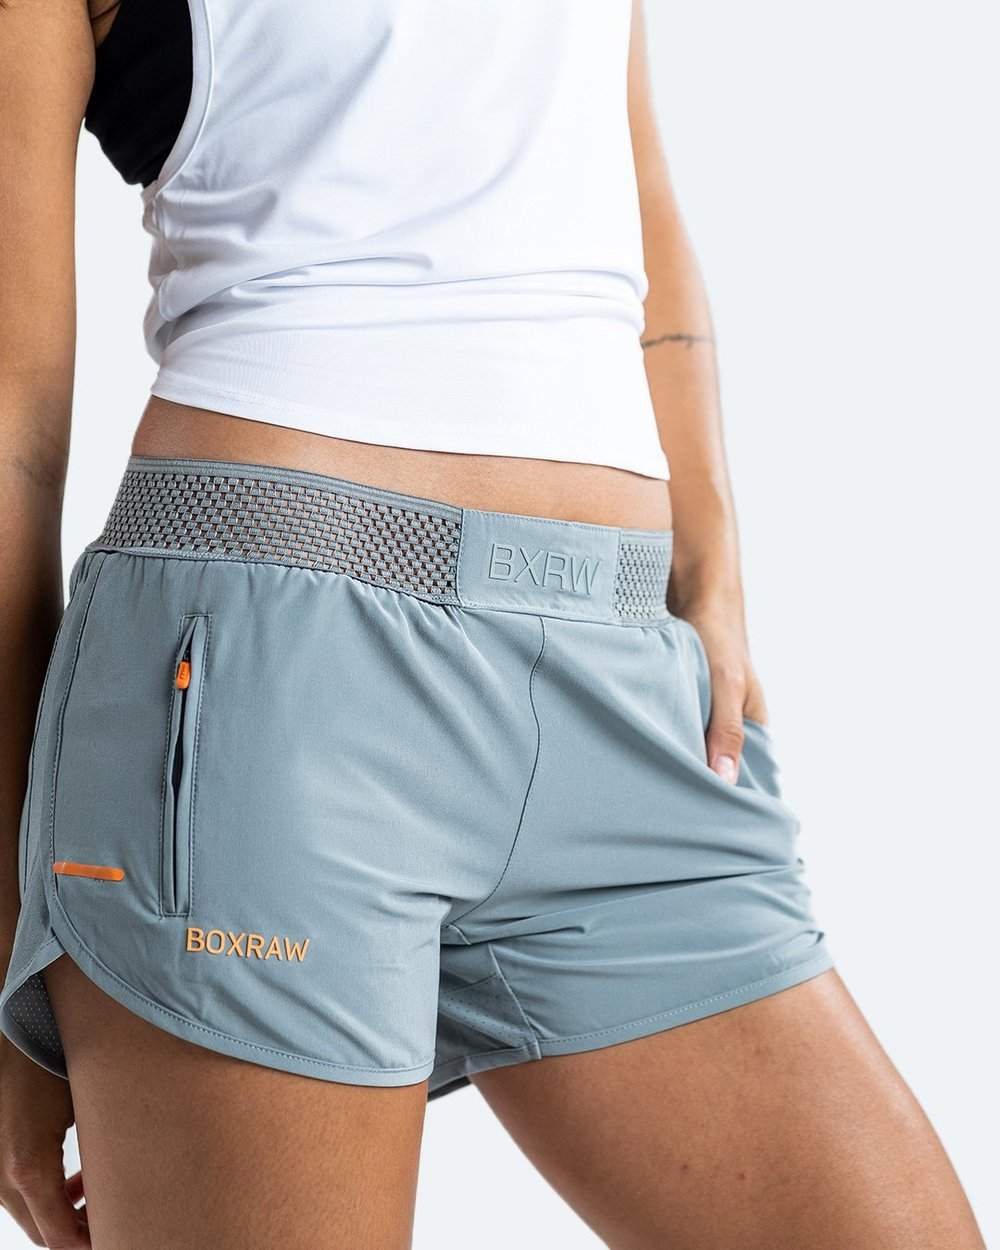 WOMEN'S LAILA SHORTS - GREY - Pandemic Fight Gear Inc.